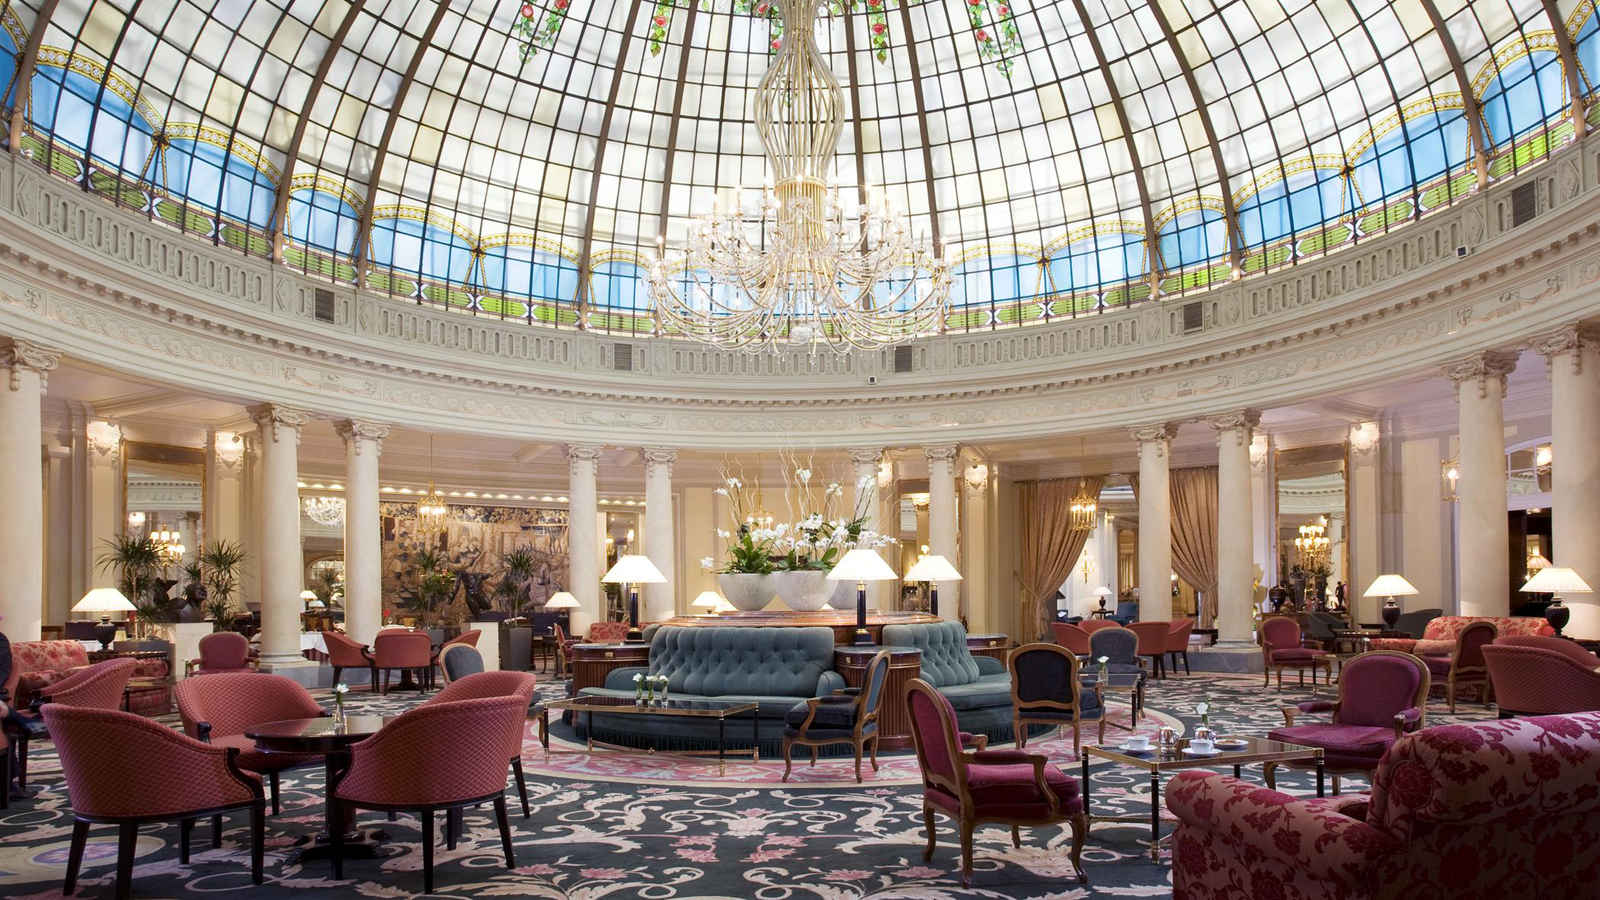 Ritz and palace two legendary luxury hotels history of - Hotel palace de barcelona ...